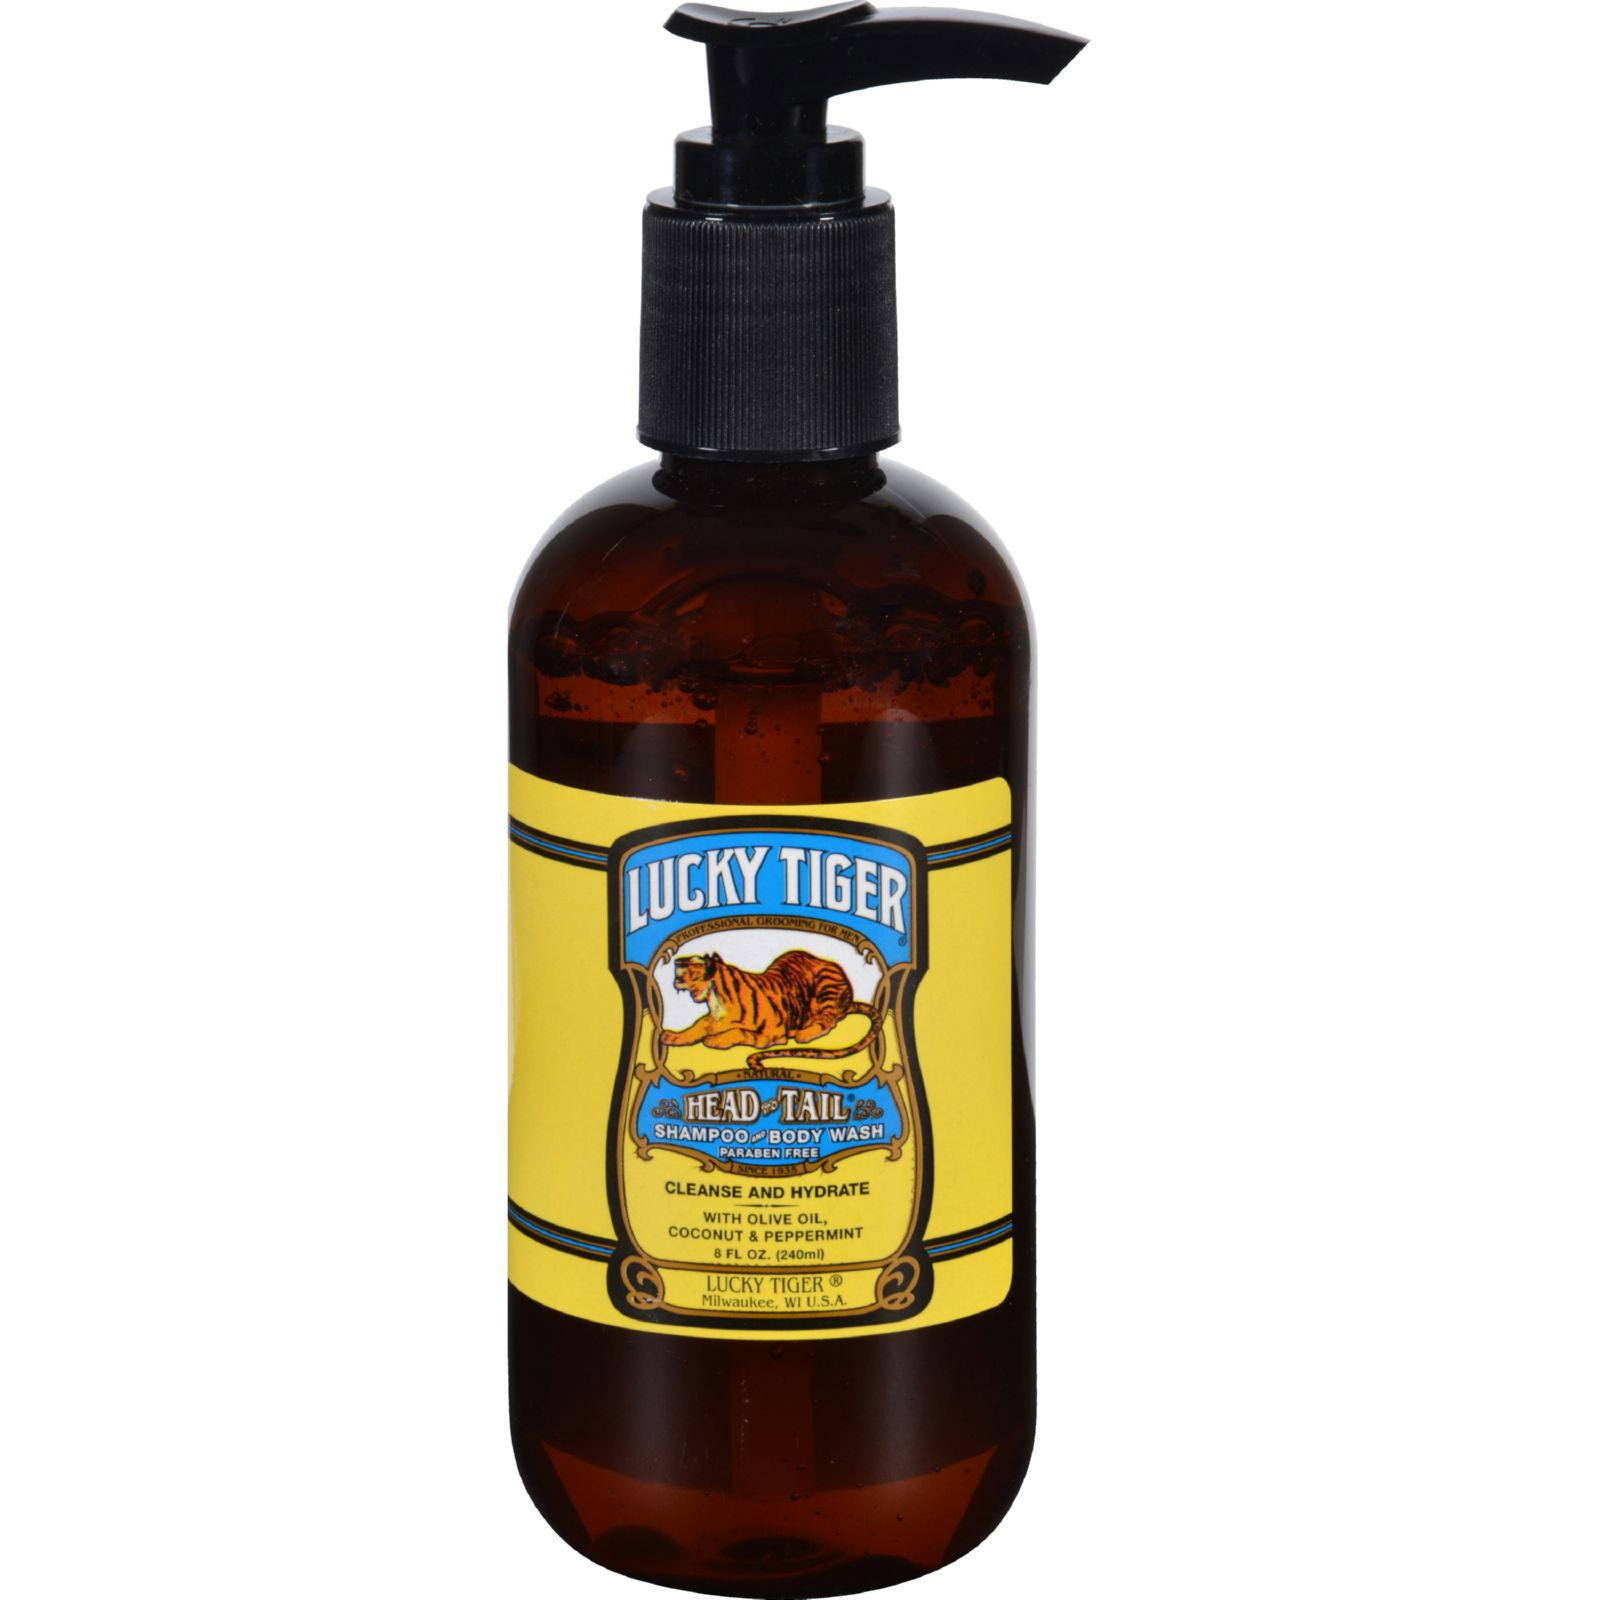 Lucky Tiger Shampoo and Body Wash  Head to Tail  8 oz